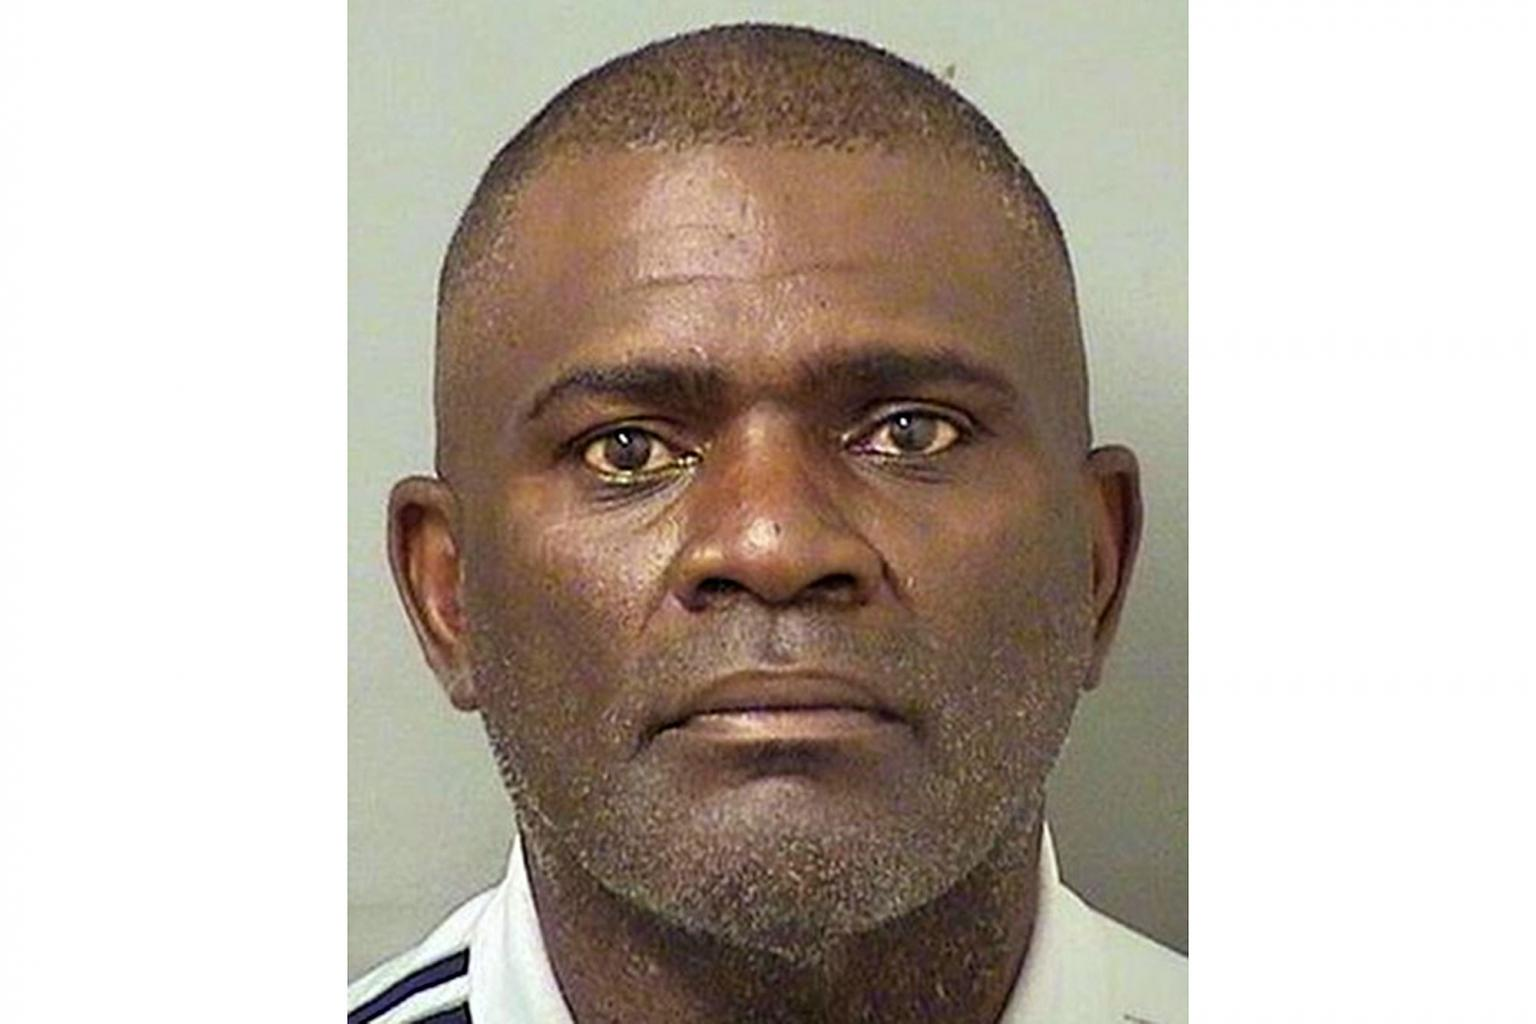 Former NFL Star and DWTS Contestant Lawrence Taylor Pleads Guilty to DUI